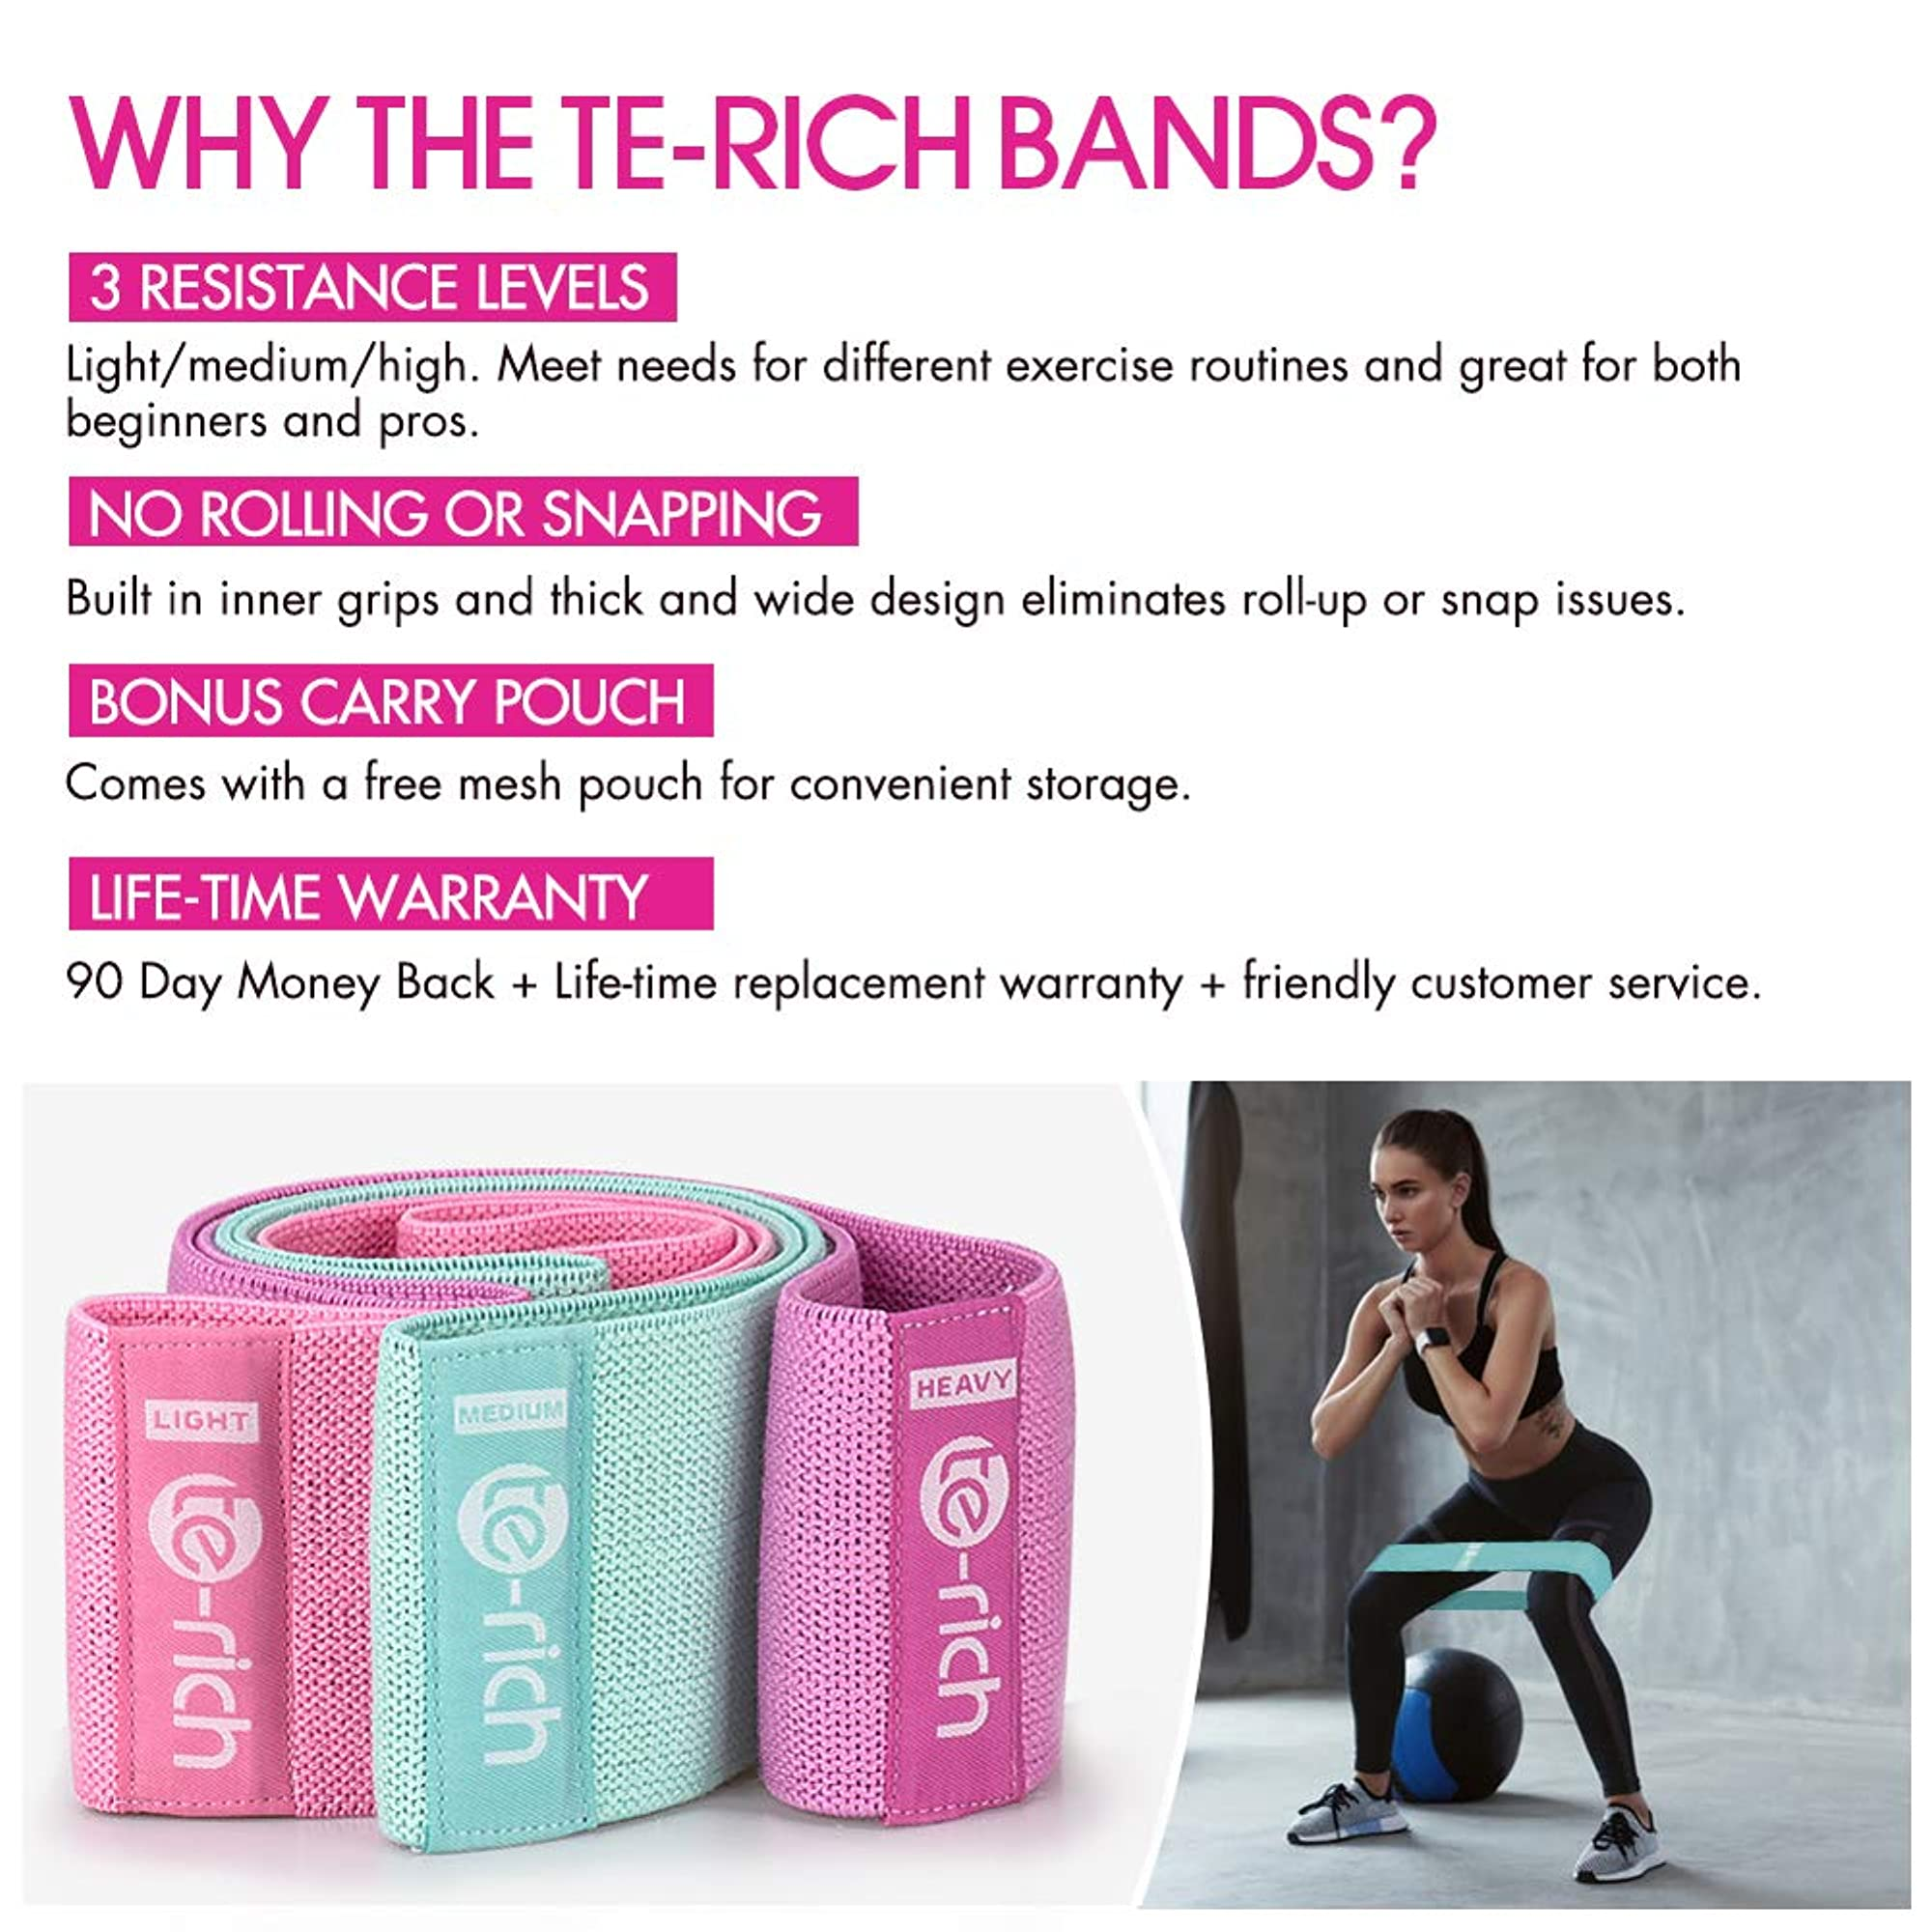 3 Set Of Resistance Bands - Thick, Wide & Non-Slip